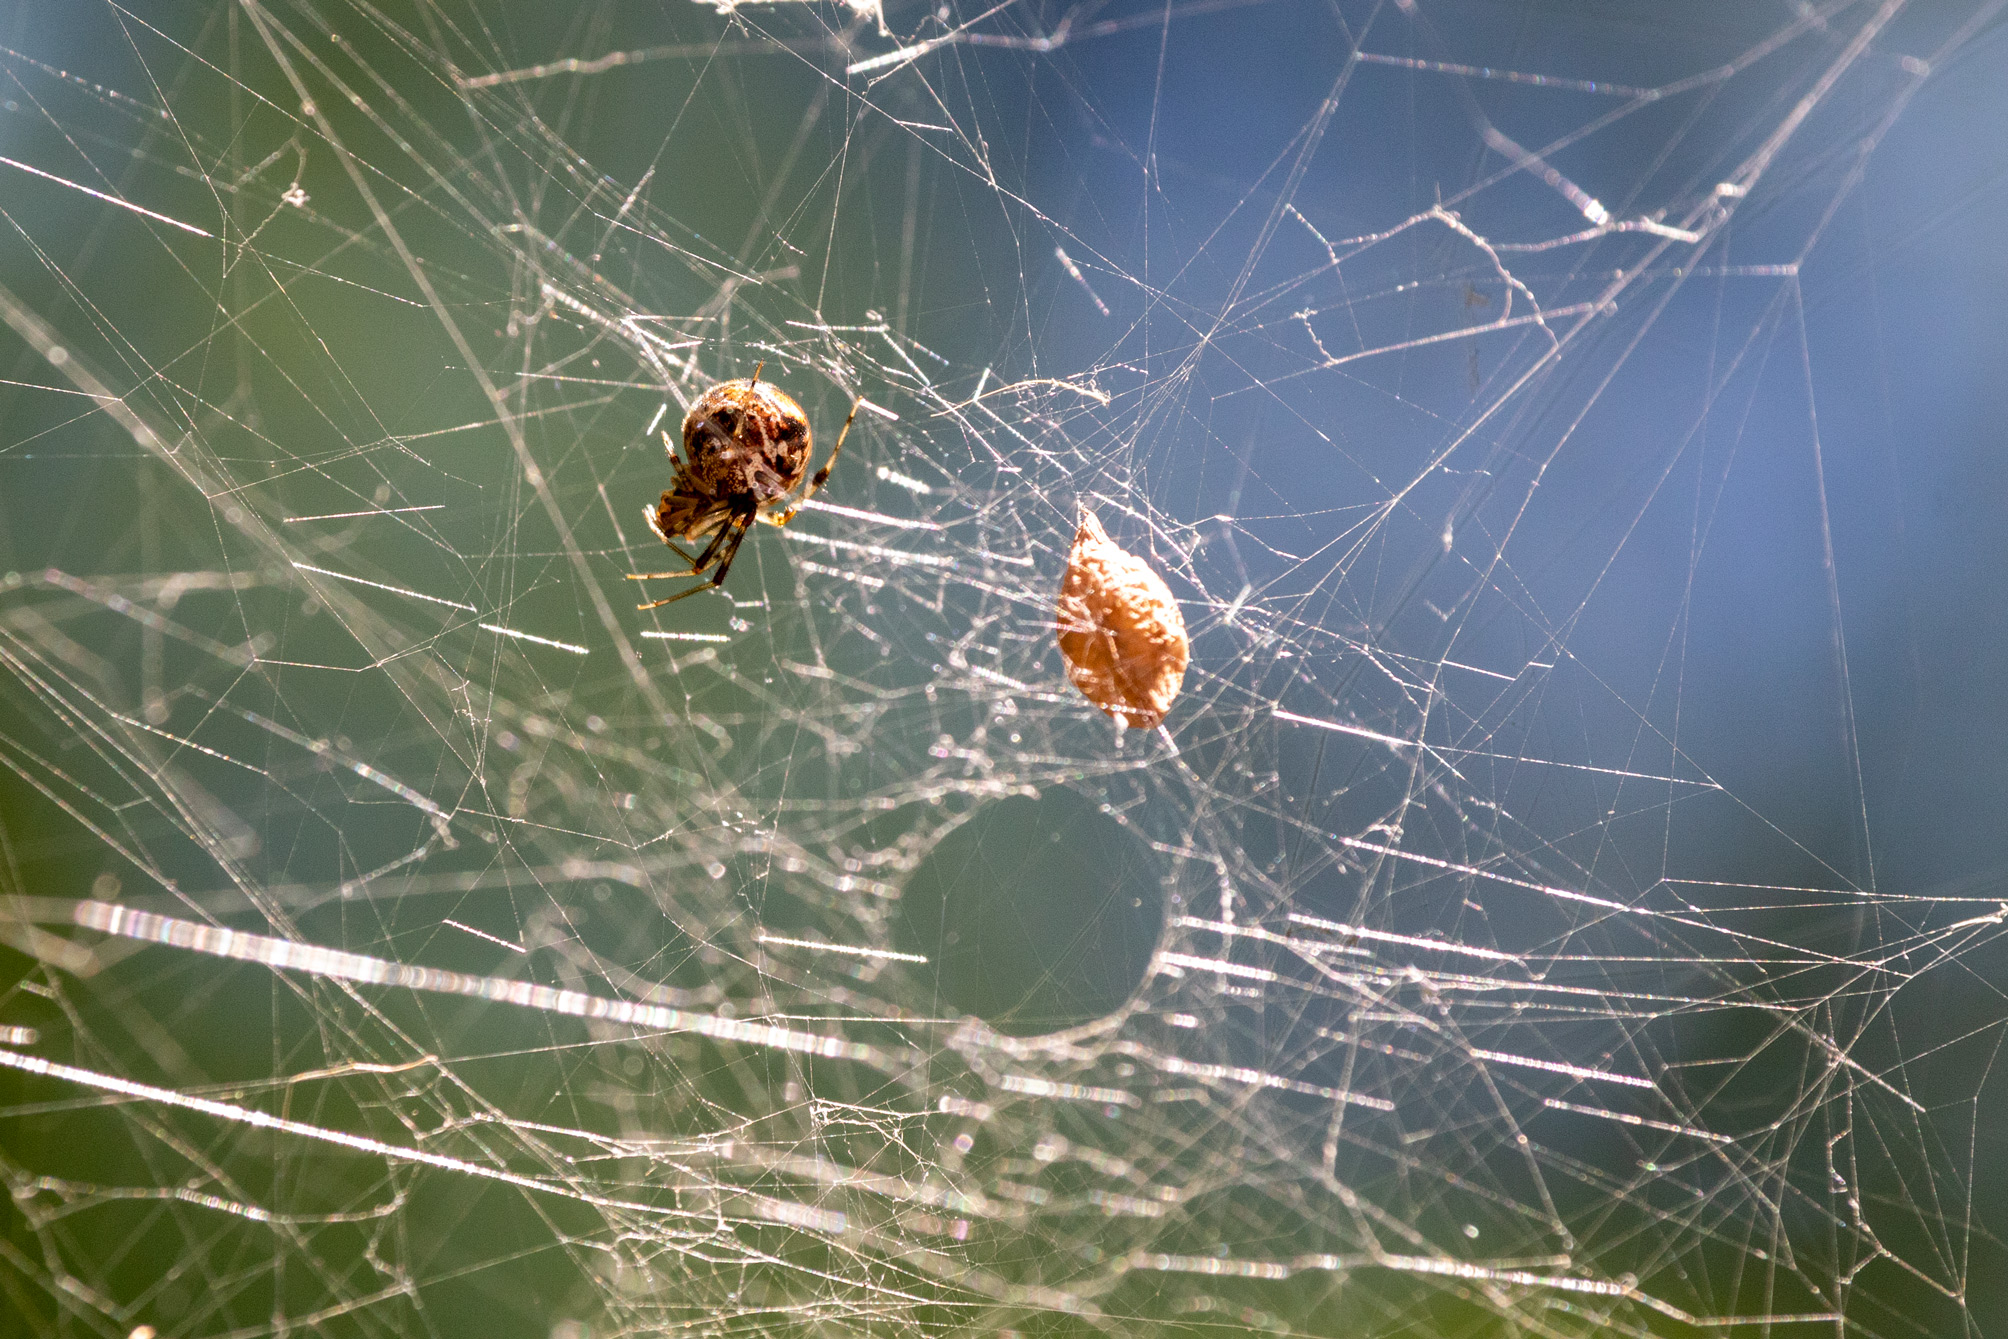 Round spider in a web with a round hole in it